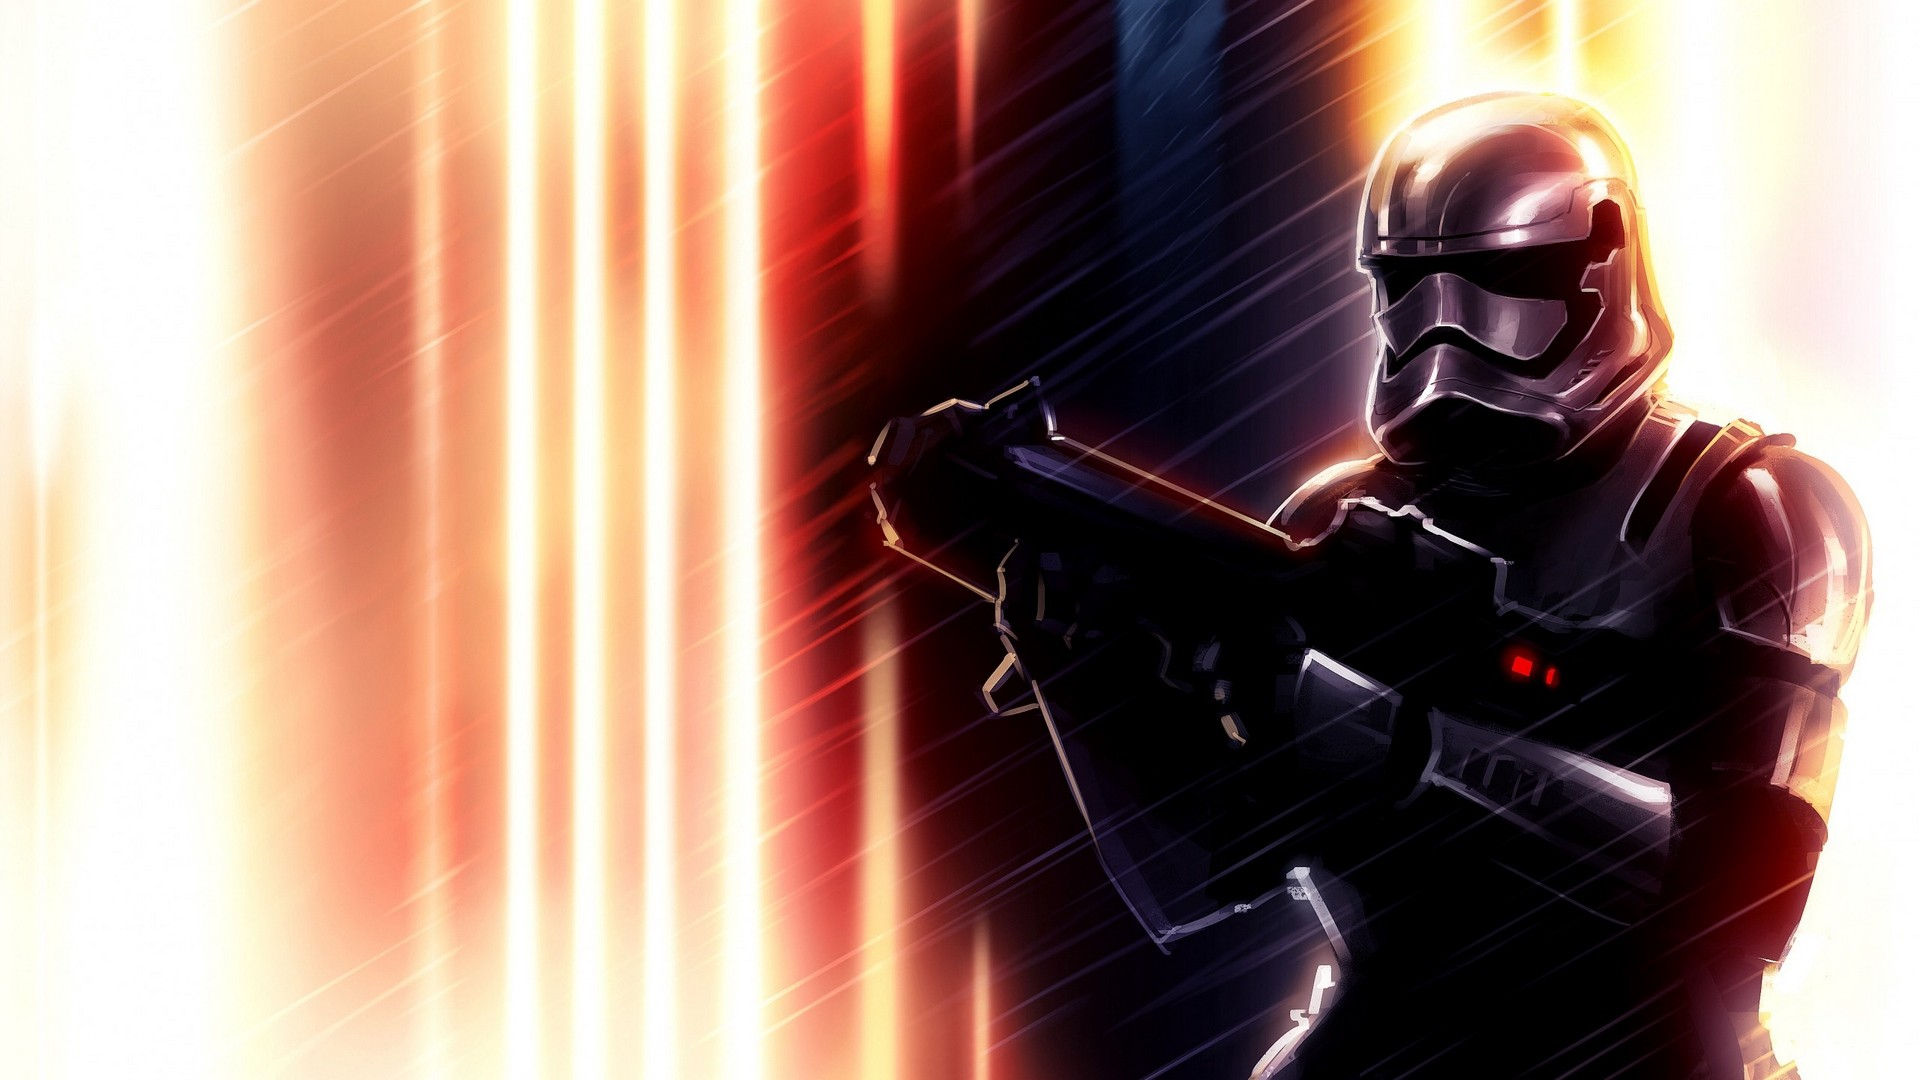 Stormtrooper Hd Wallpaper Available In Different Dimensions Iphone 7 Plus Iphone 8 Plus Hd Wallpaper Wallpapers Net